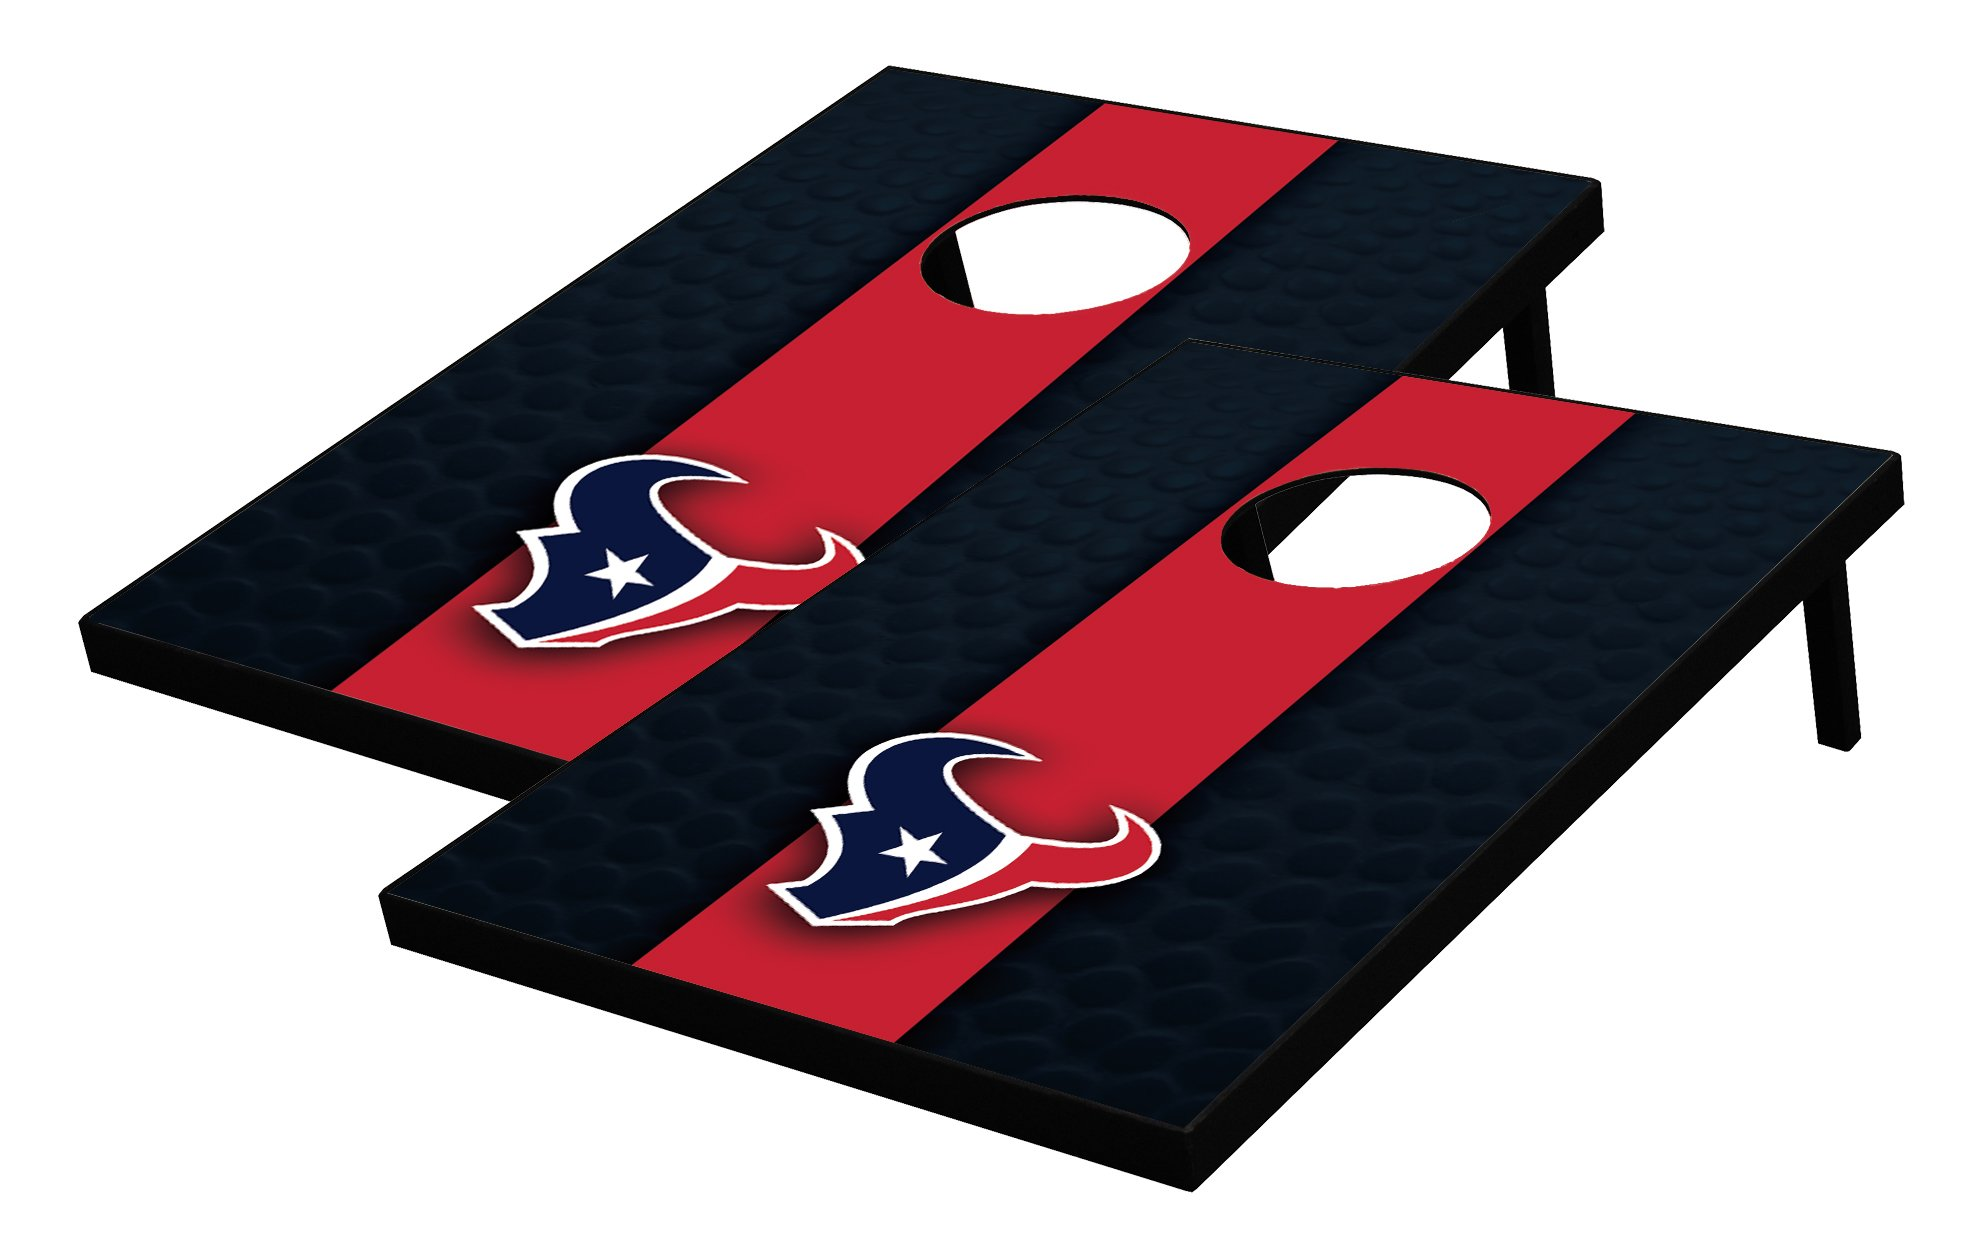 NFL Houston Texans Tailgate Toss Bean Bag Game Set, Medium